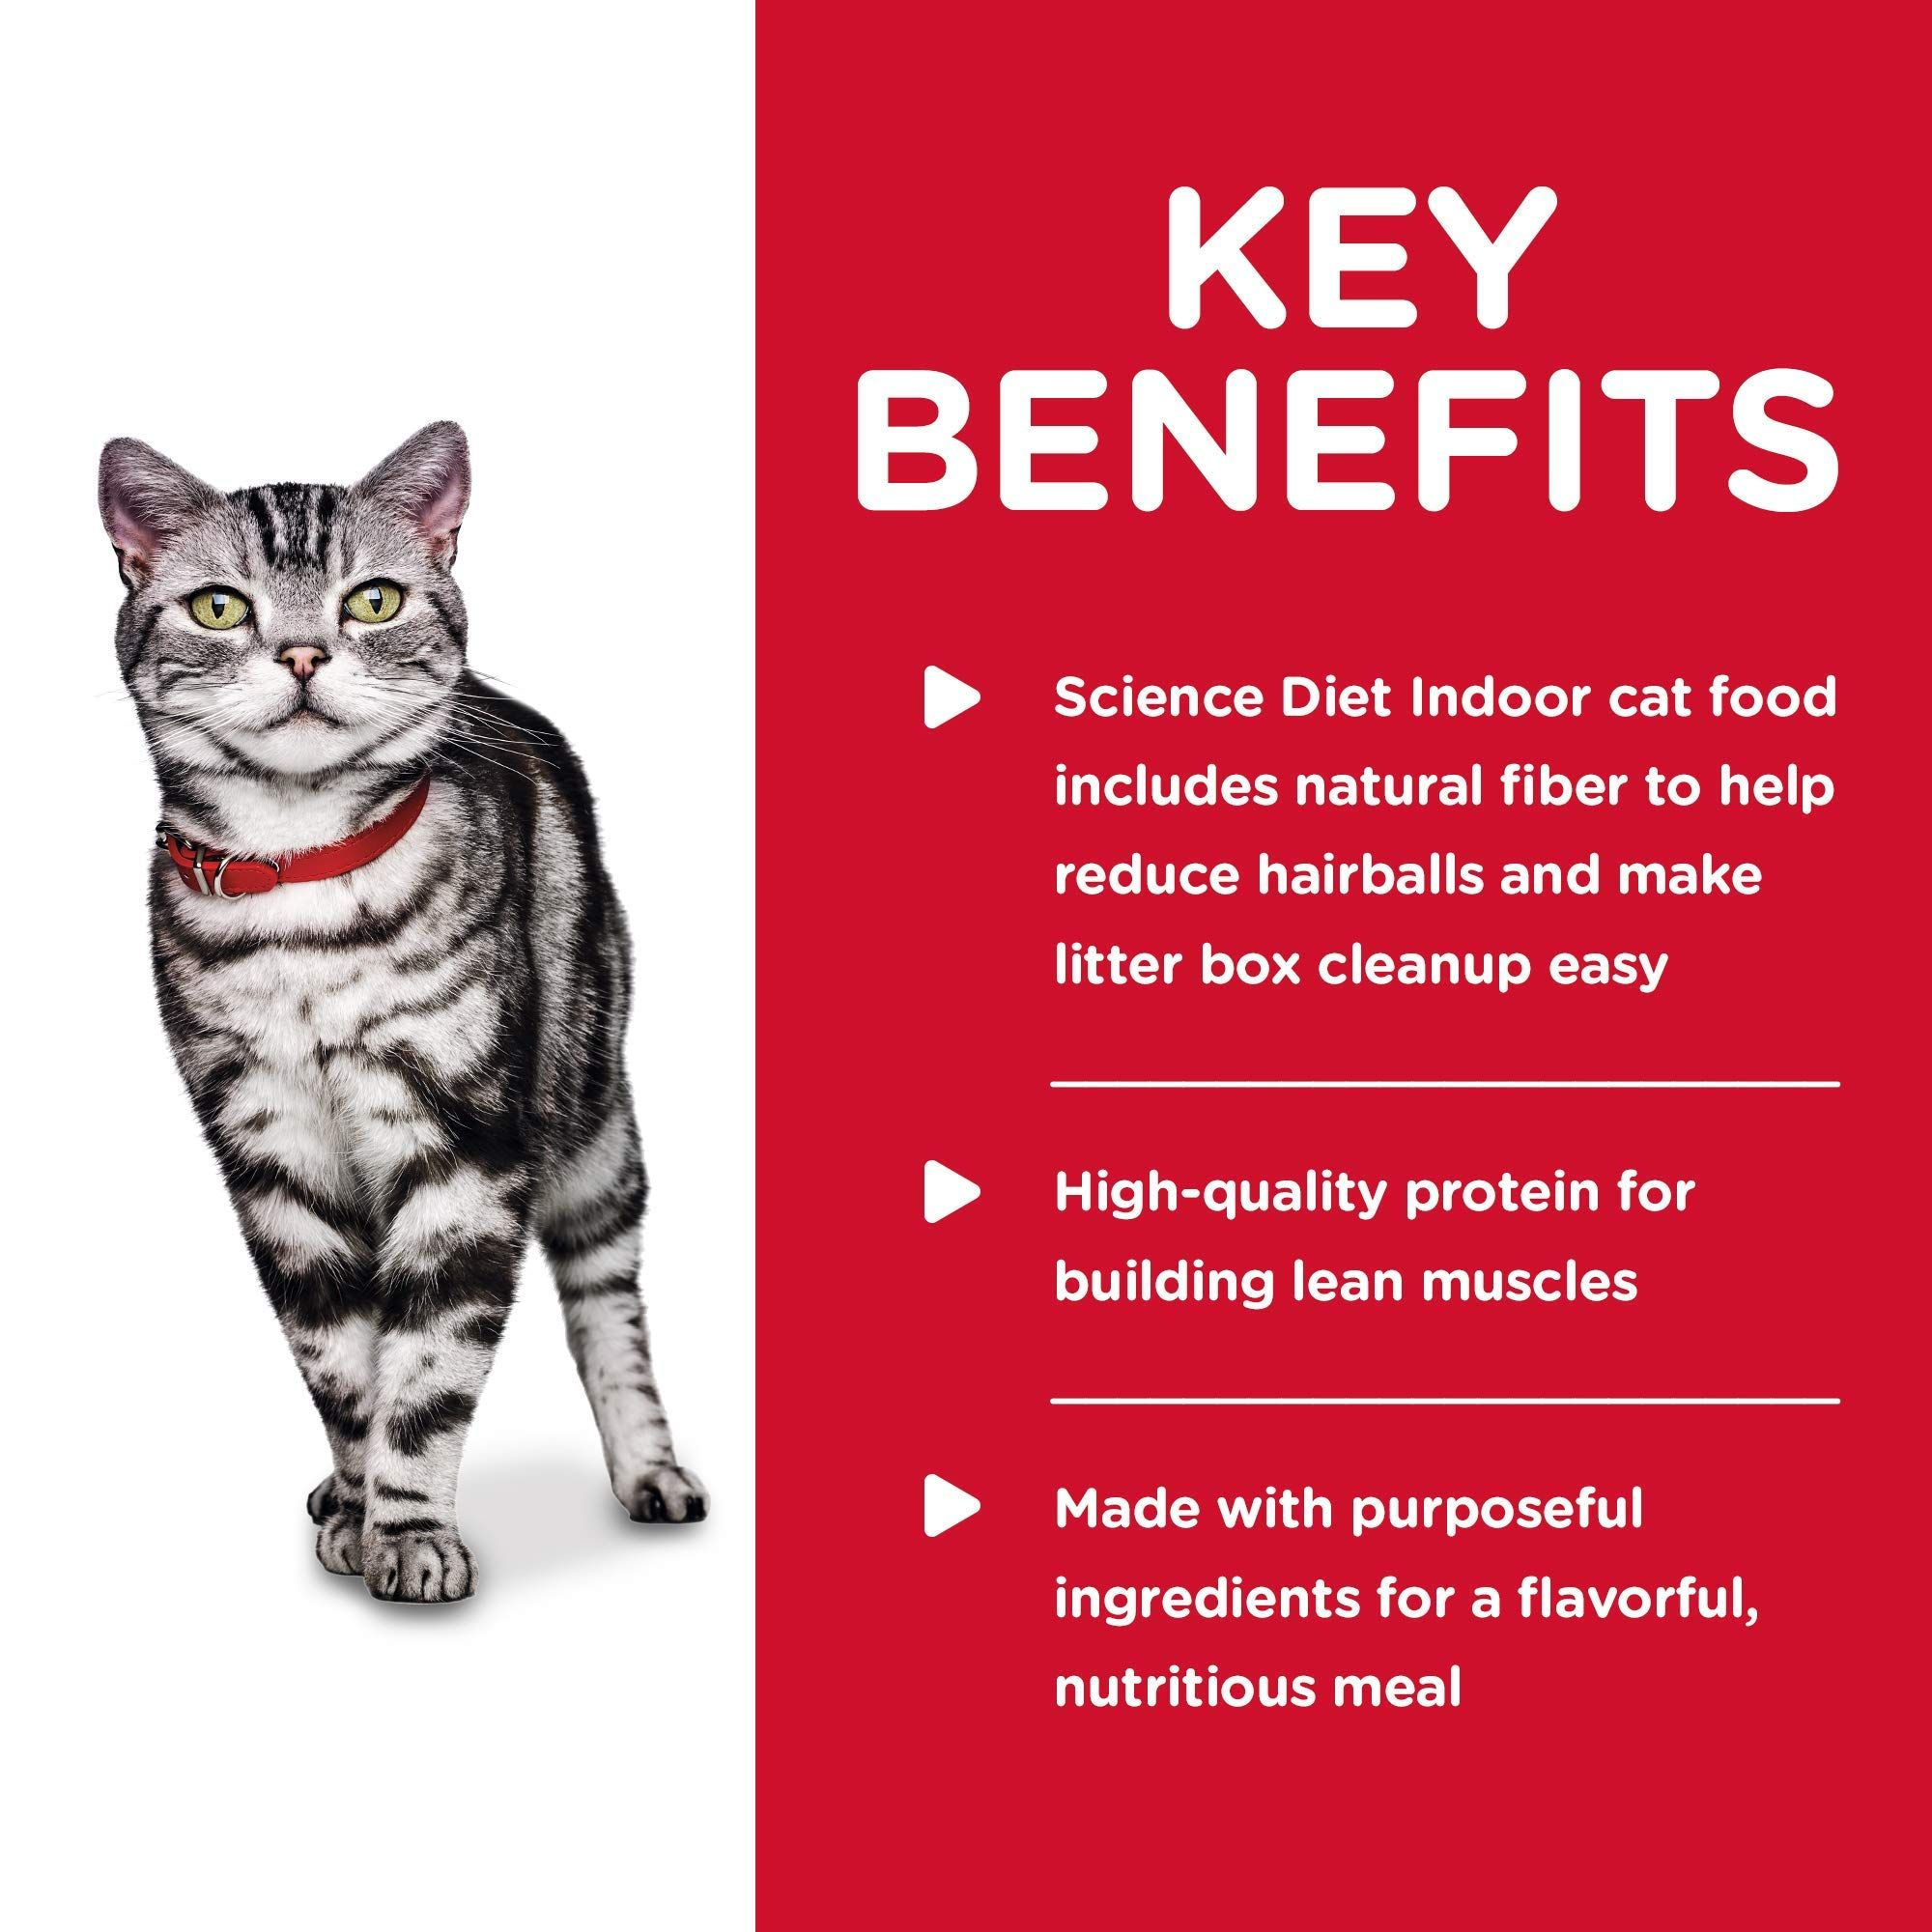 Hill S Science Diet Wet Cat Food Adult Indoor 5 5 Oz Cans 24 Pack Ad Wet Sponsored Cat Food Hill Hills Science Diet Indoor Cat Food Science Diet